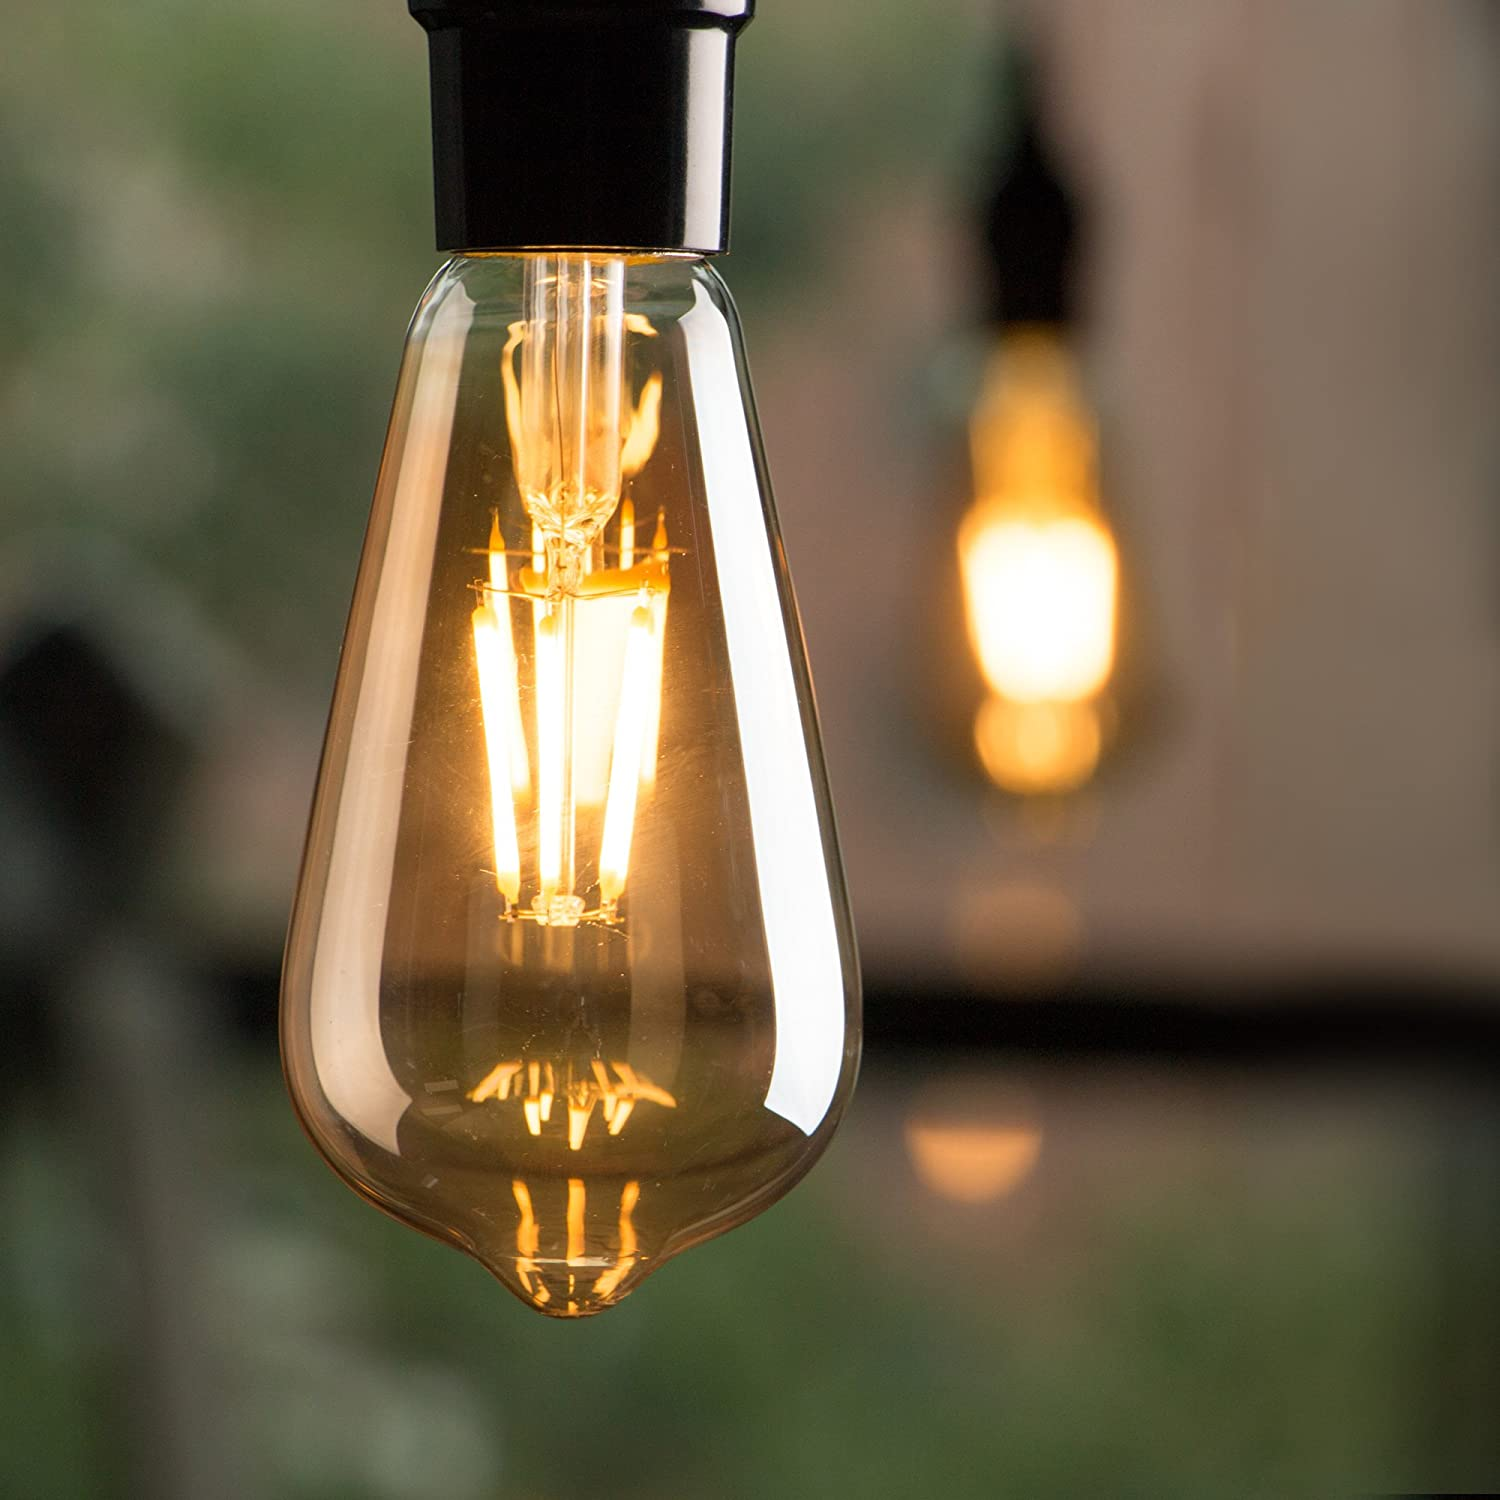 4 Pack Vintage LED Edison Light Bulbs, Dimmable 6-Watt ST64 A19 LED Replacement Bulbs 60 Watt Equivalent, Antique Filament Bulbs for Cage Pendant Lights Wall Sconces Ceiling and Chandelier, Amber Warm